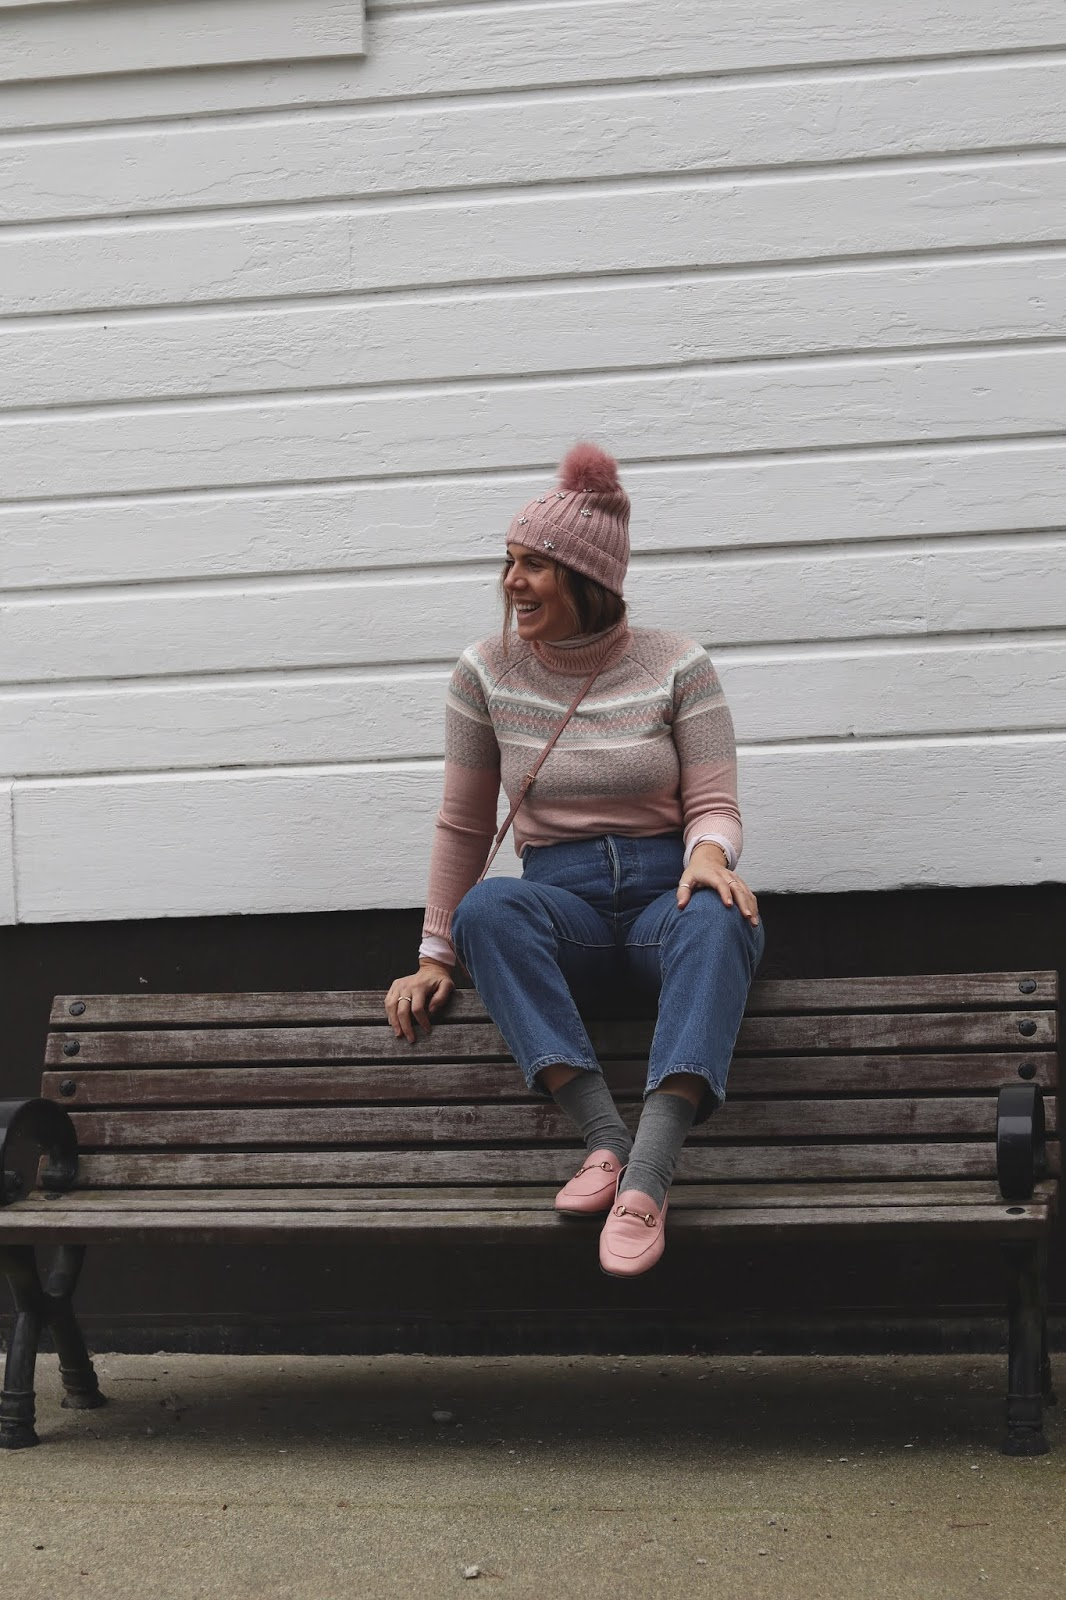 Le Chateau pink toque blogger le chateau pink strip turtleneck sweater outfit levi's ribcage jeans vancouver blogger